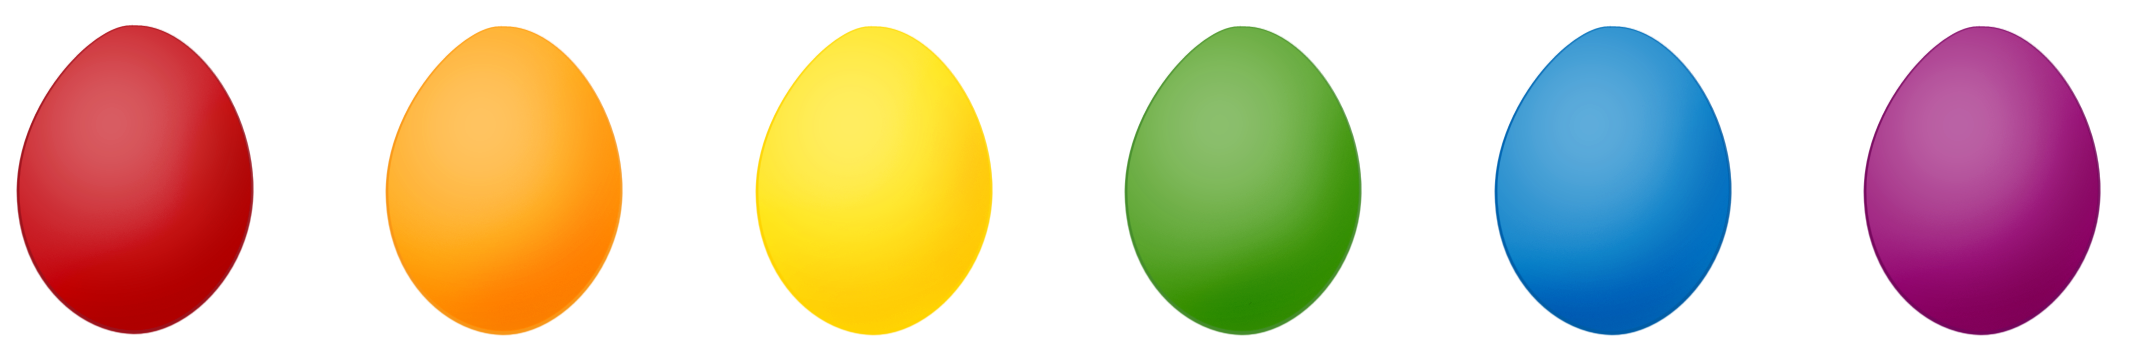 Easter egg border png. Eggs clipart gallery yopriceville